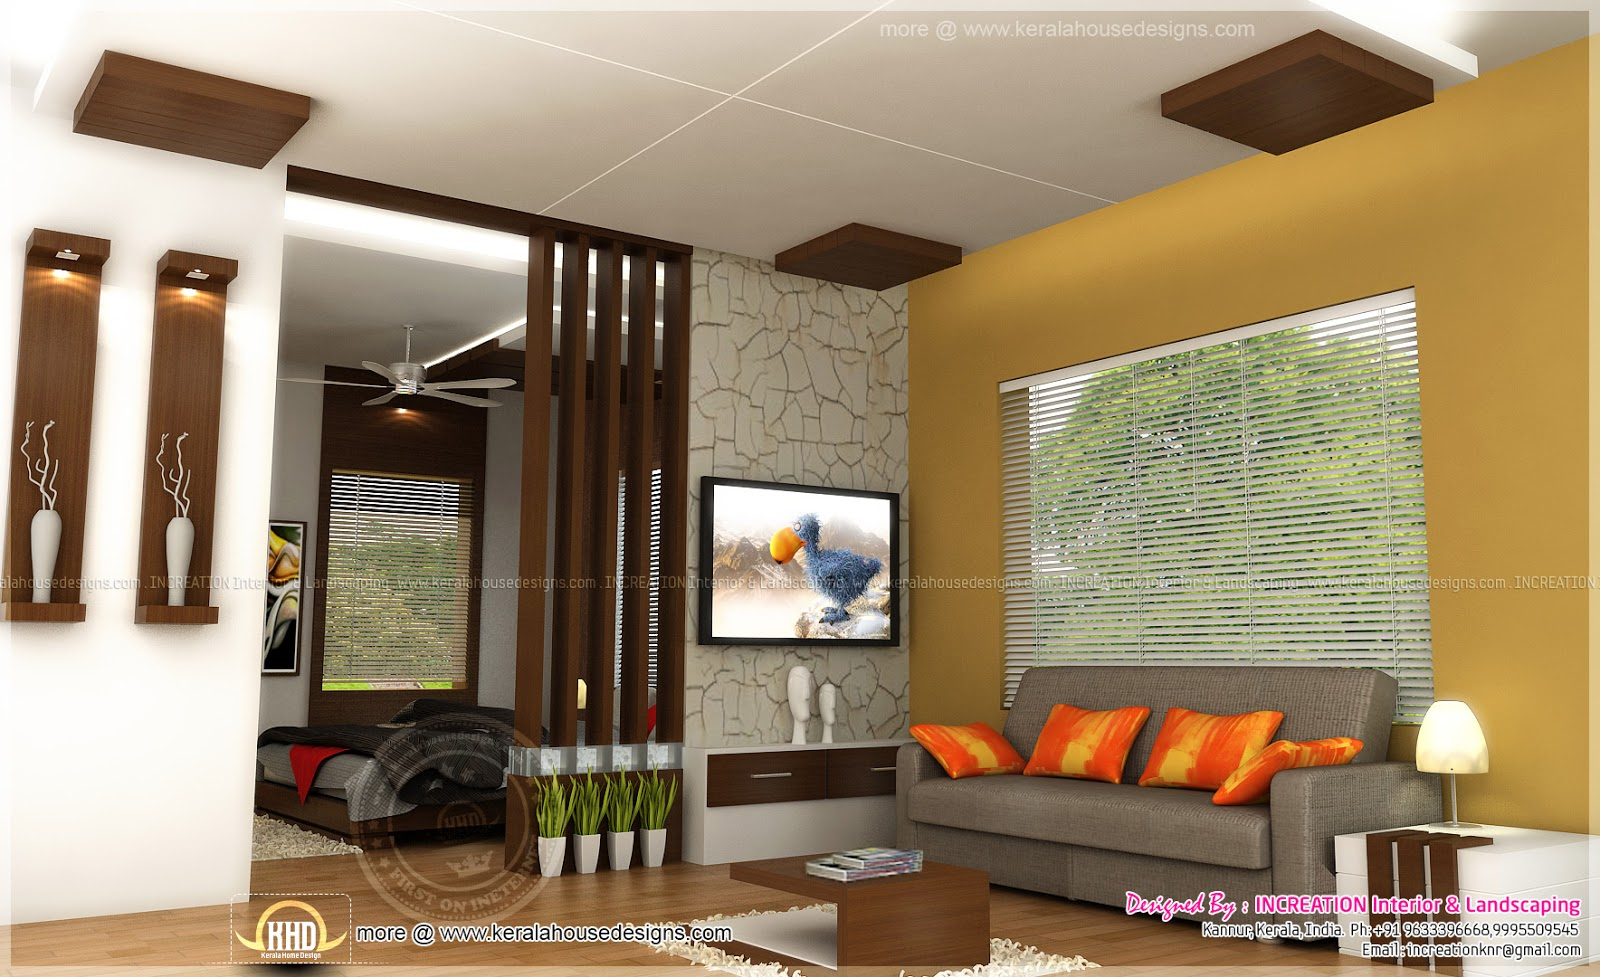 Interior designs from kannur kerala home kerala plans for Latest room interior